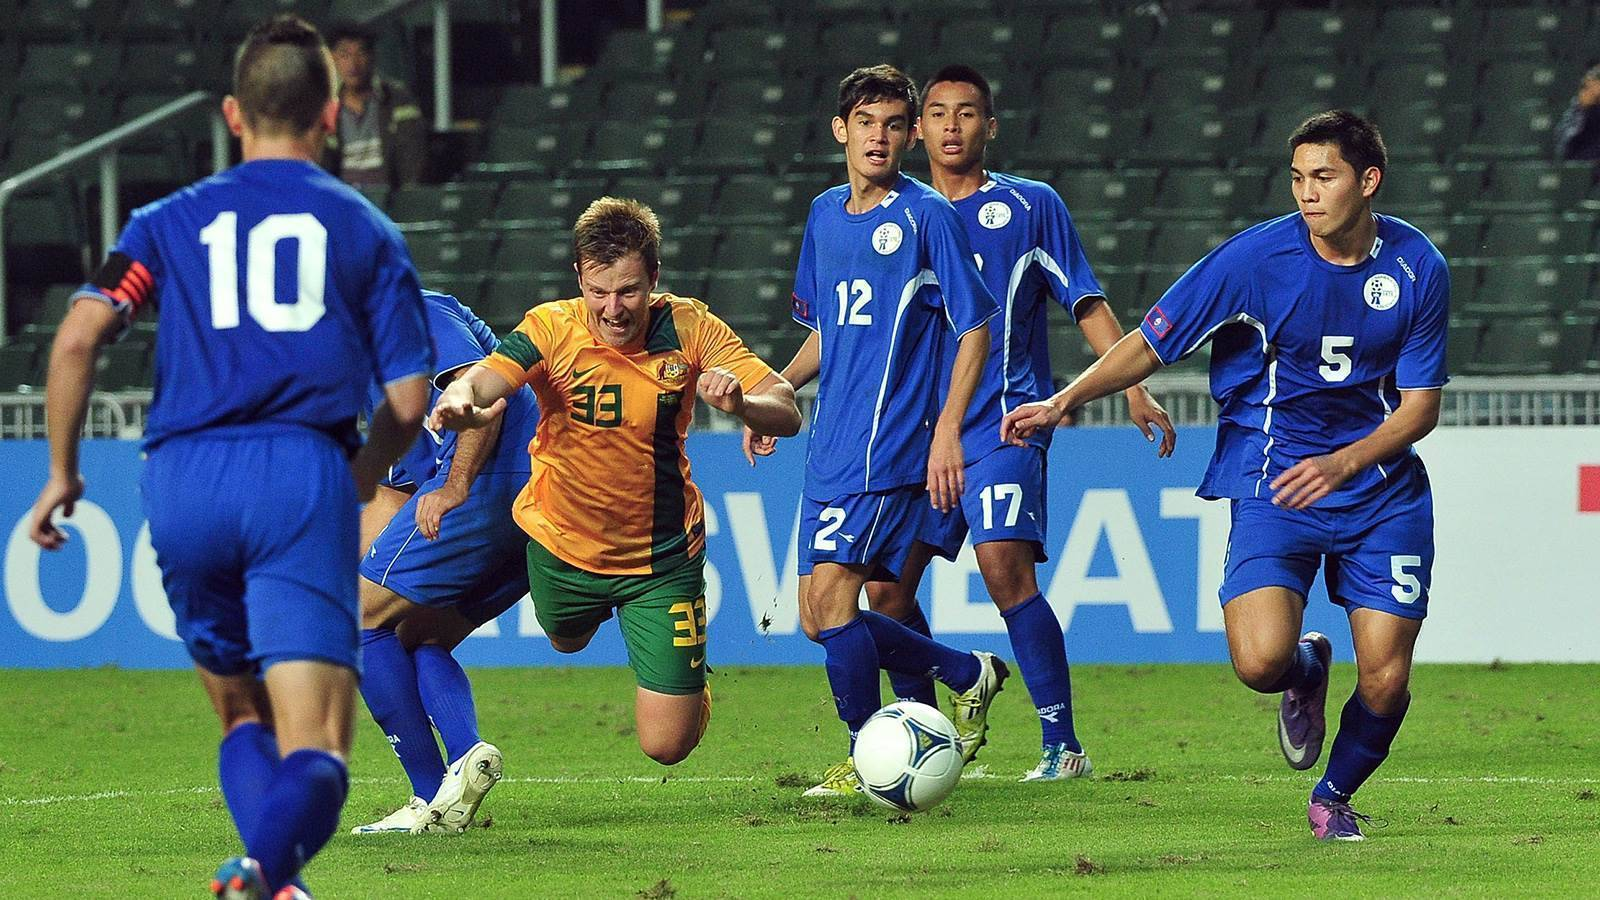 Aussie coached Guam could face Socceroos on road to Qatar 2022